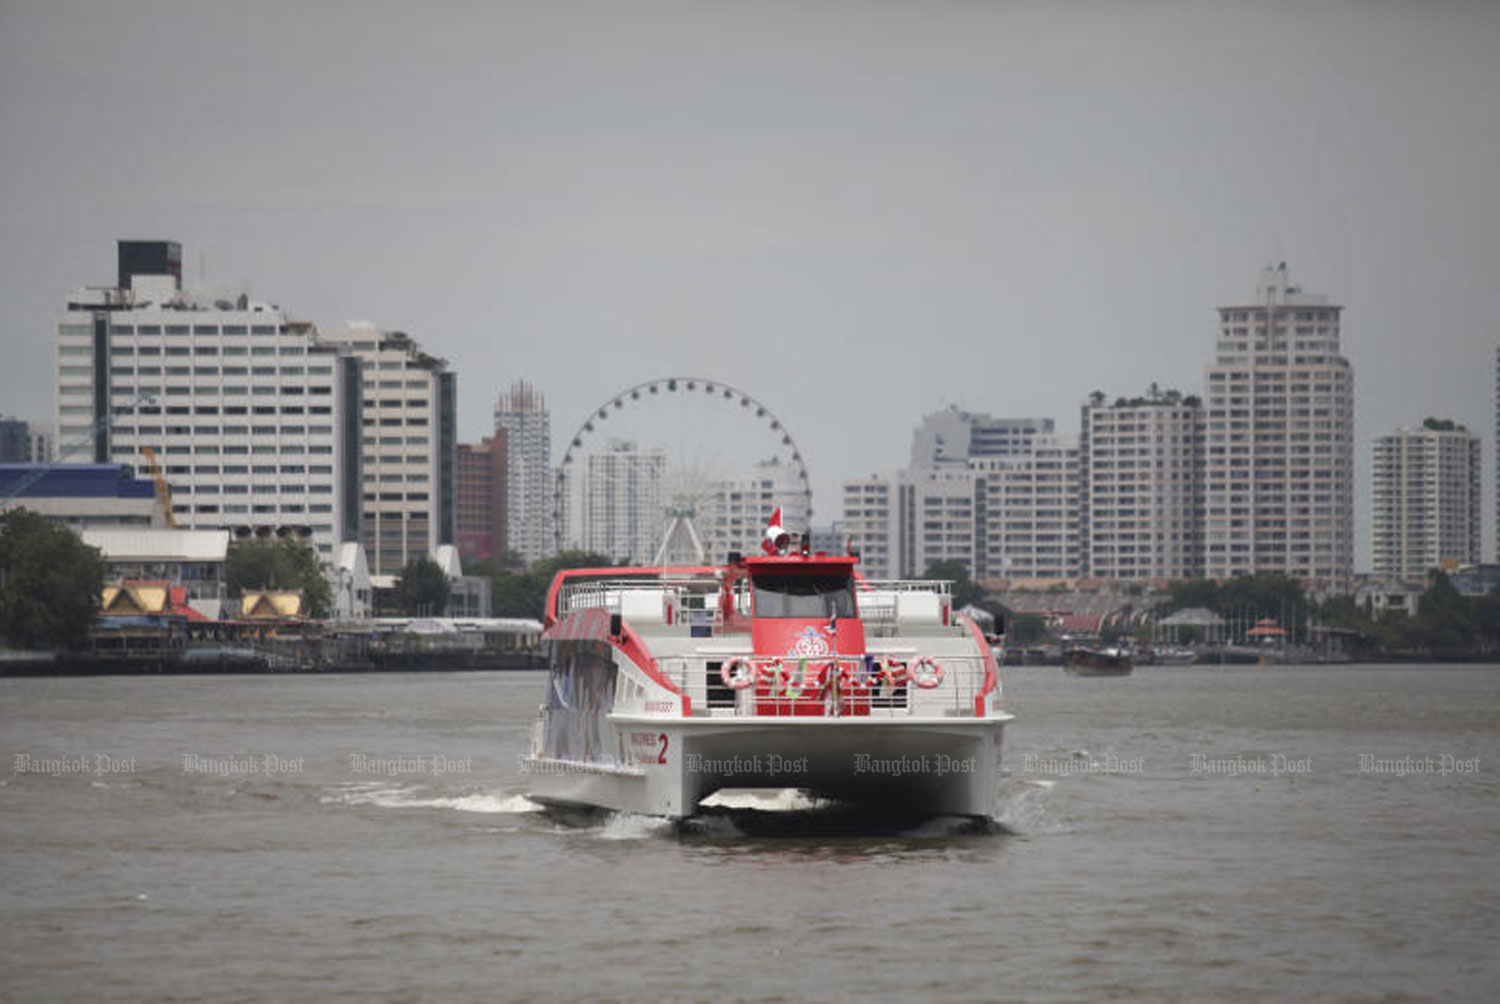 No Chao Phraya express boats weekends, holidays